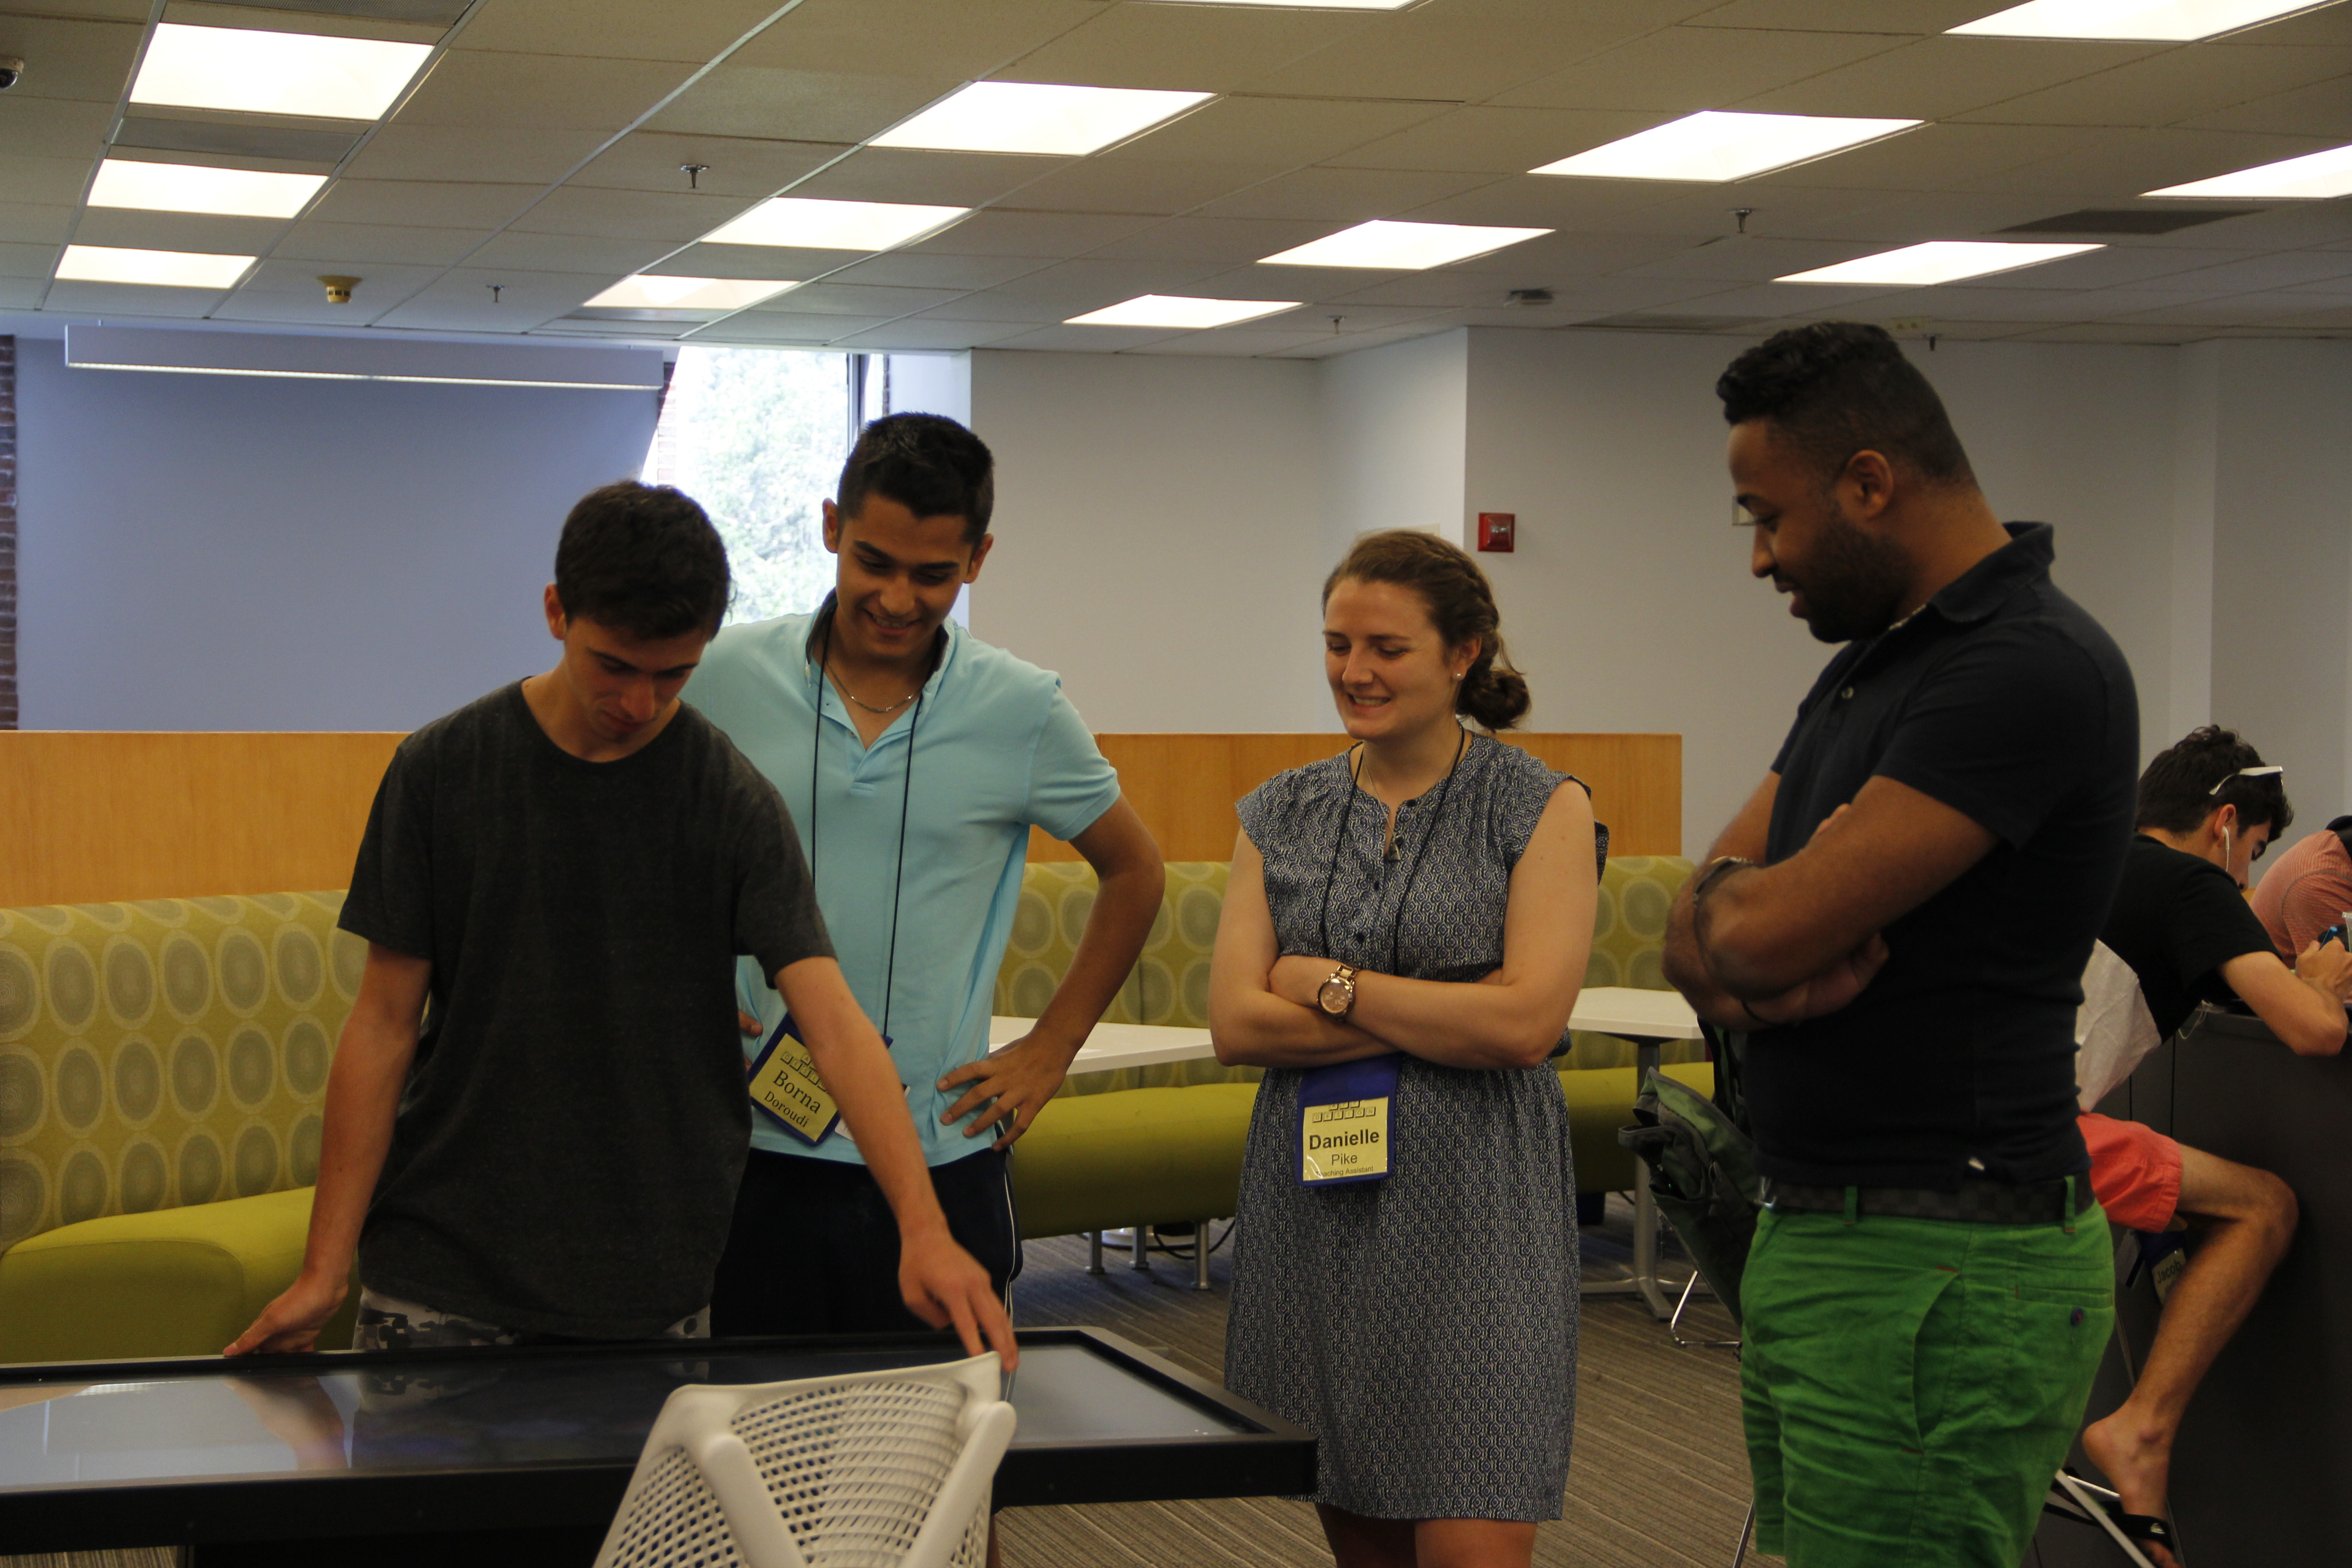 Summer Program - Computer Science | Brandeis University Precollege Programs: App Design